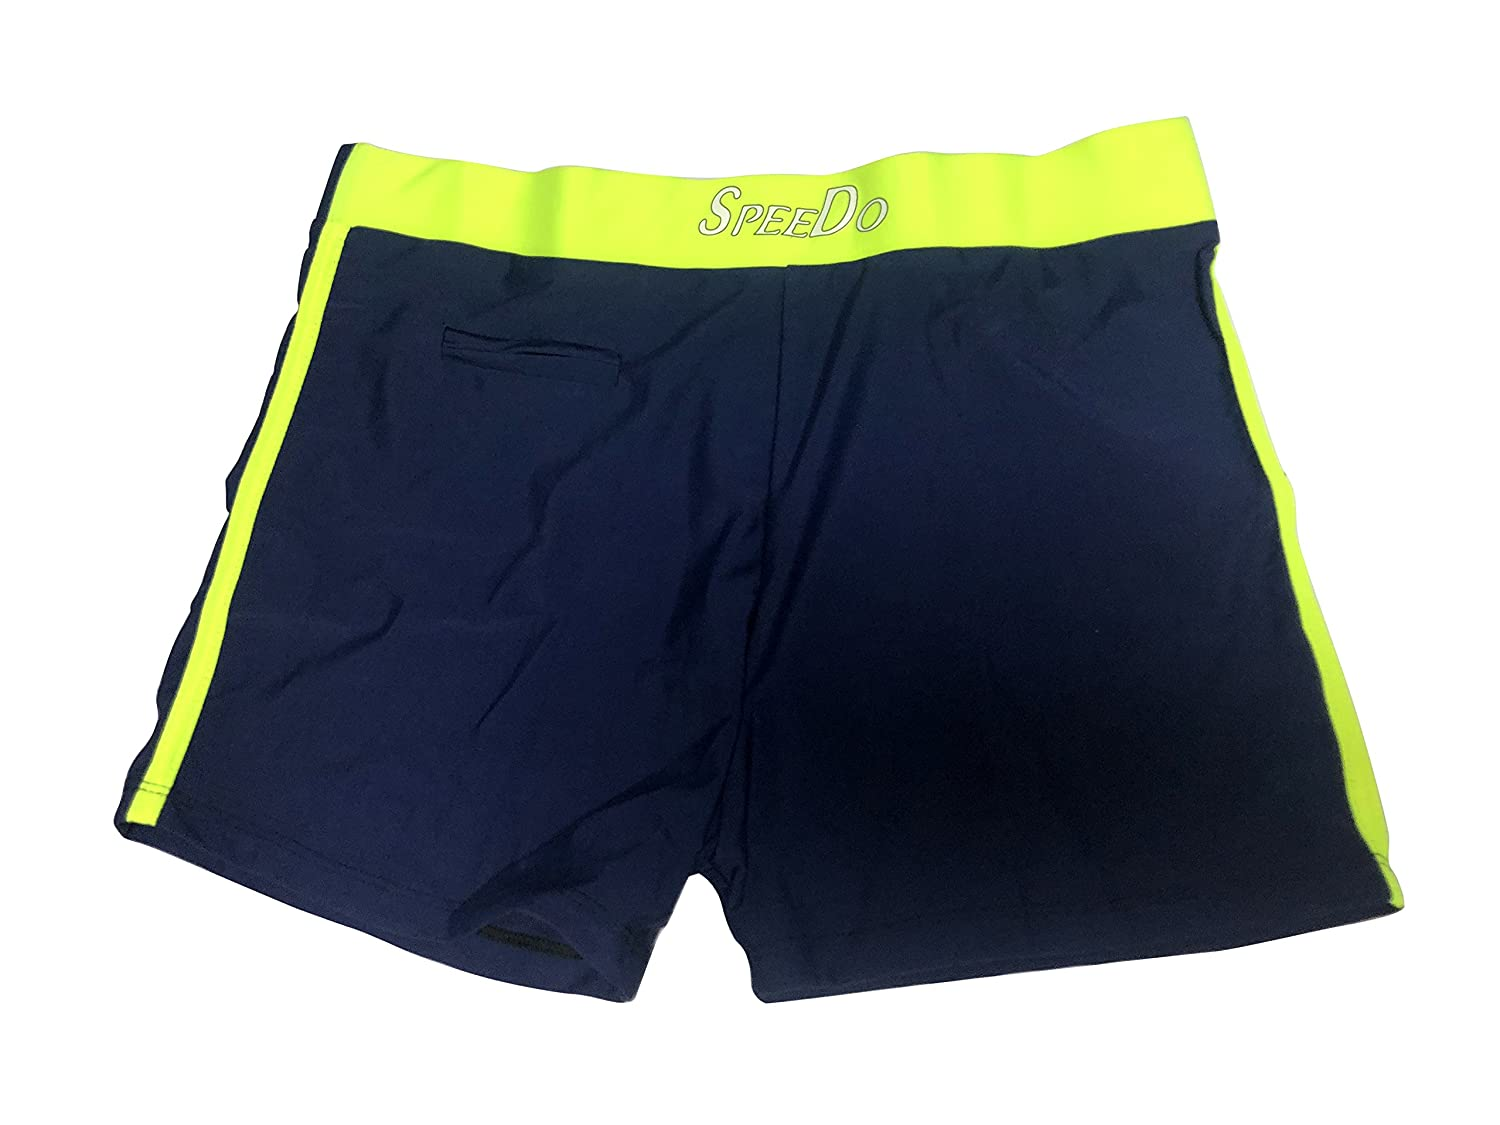 01fe495cc7 Men's / Boys Swimming trunks / swim wear - Blue with Neon Green - XXL (30 -  32 inches): Amazon.in: Clothing & Accessories